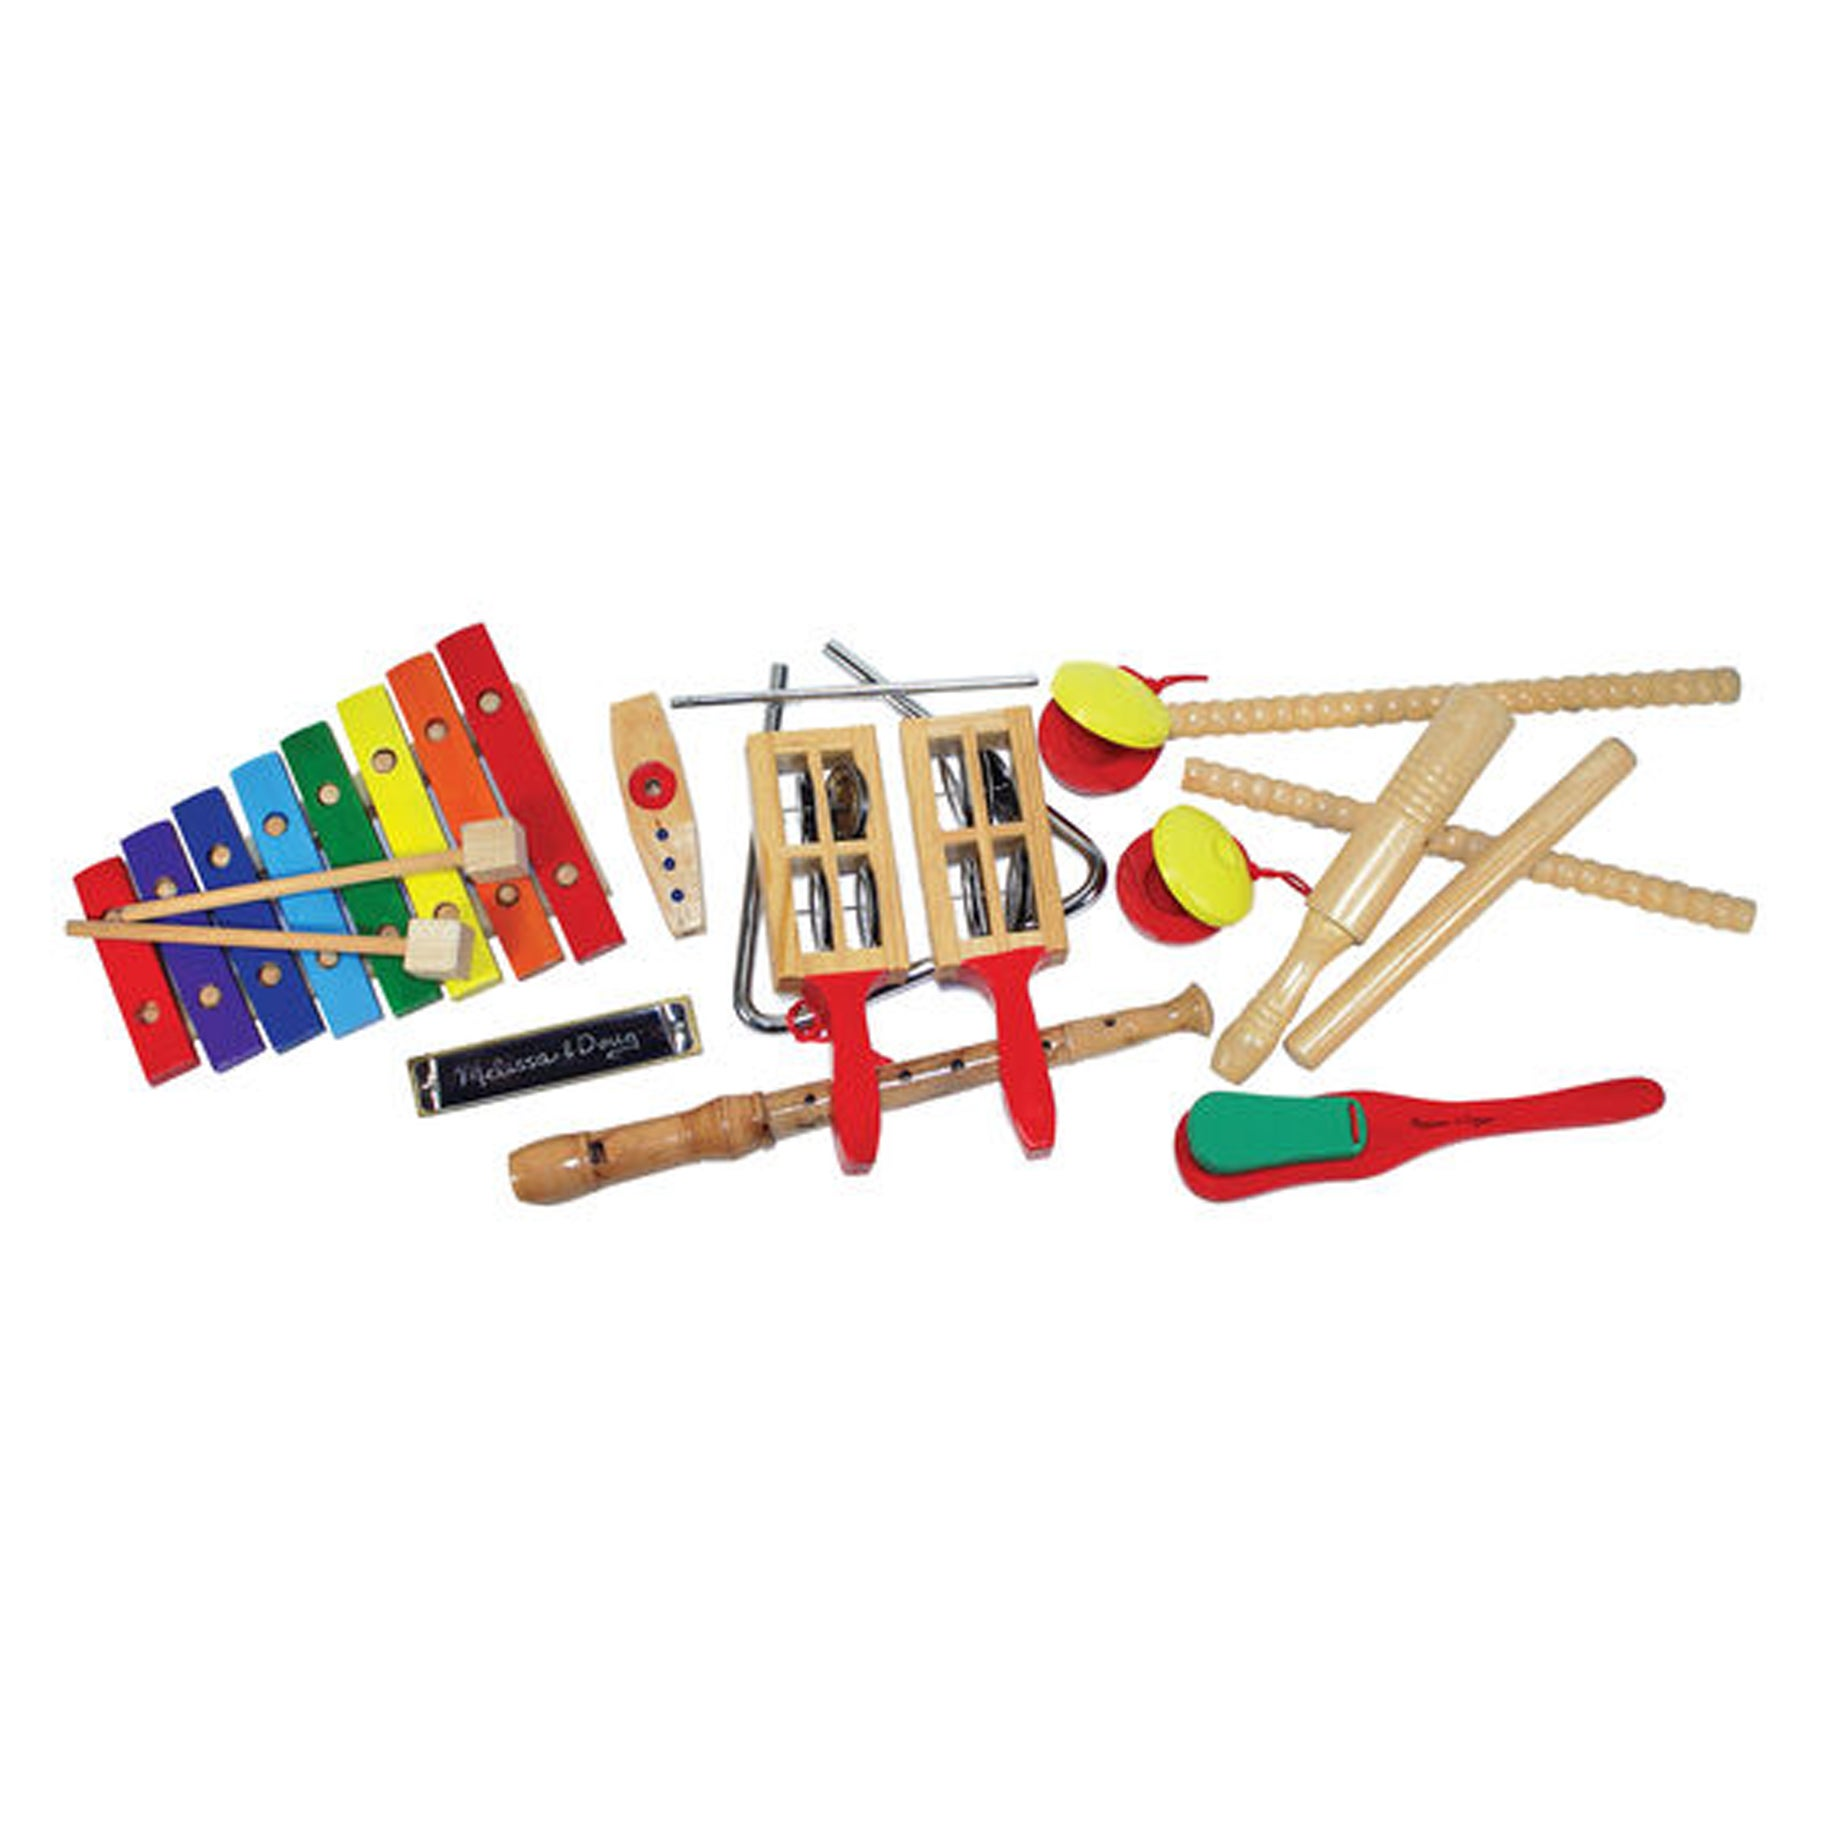 The-Best-Baby-Toys-Option-Melissa-And-Doug-Wooden-Deluxe-Band-Set